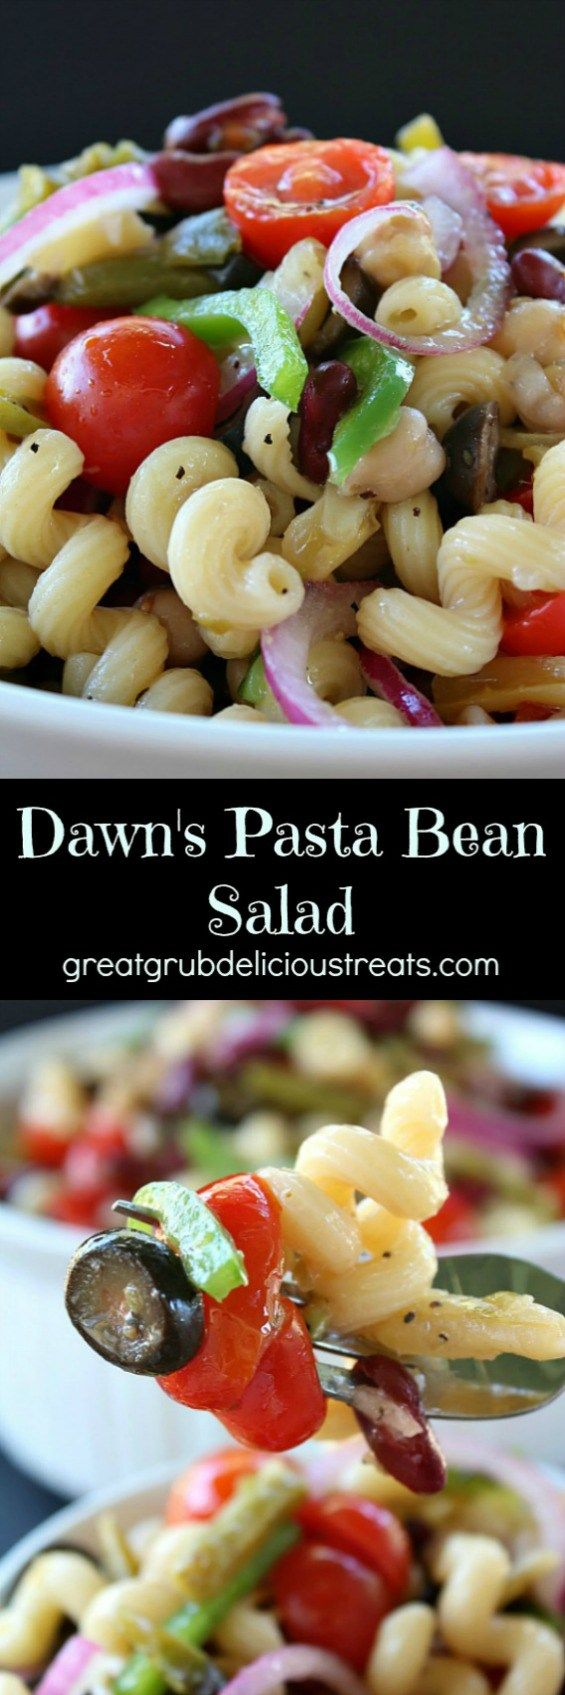 Dawn's Pasta Bean Salad                                                                                                                                                      More